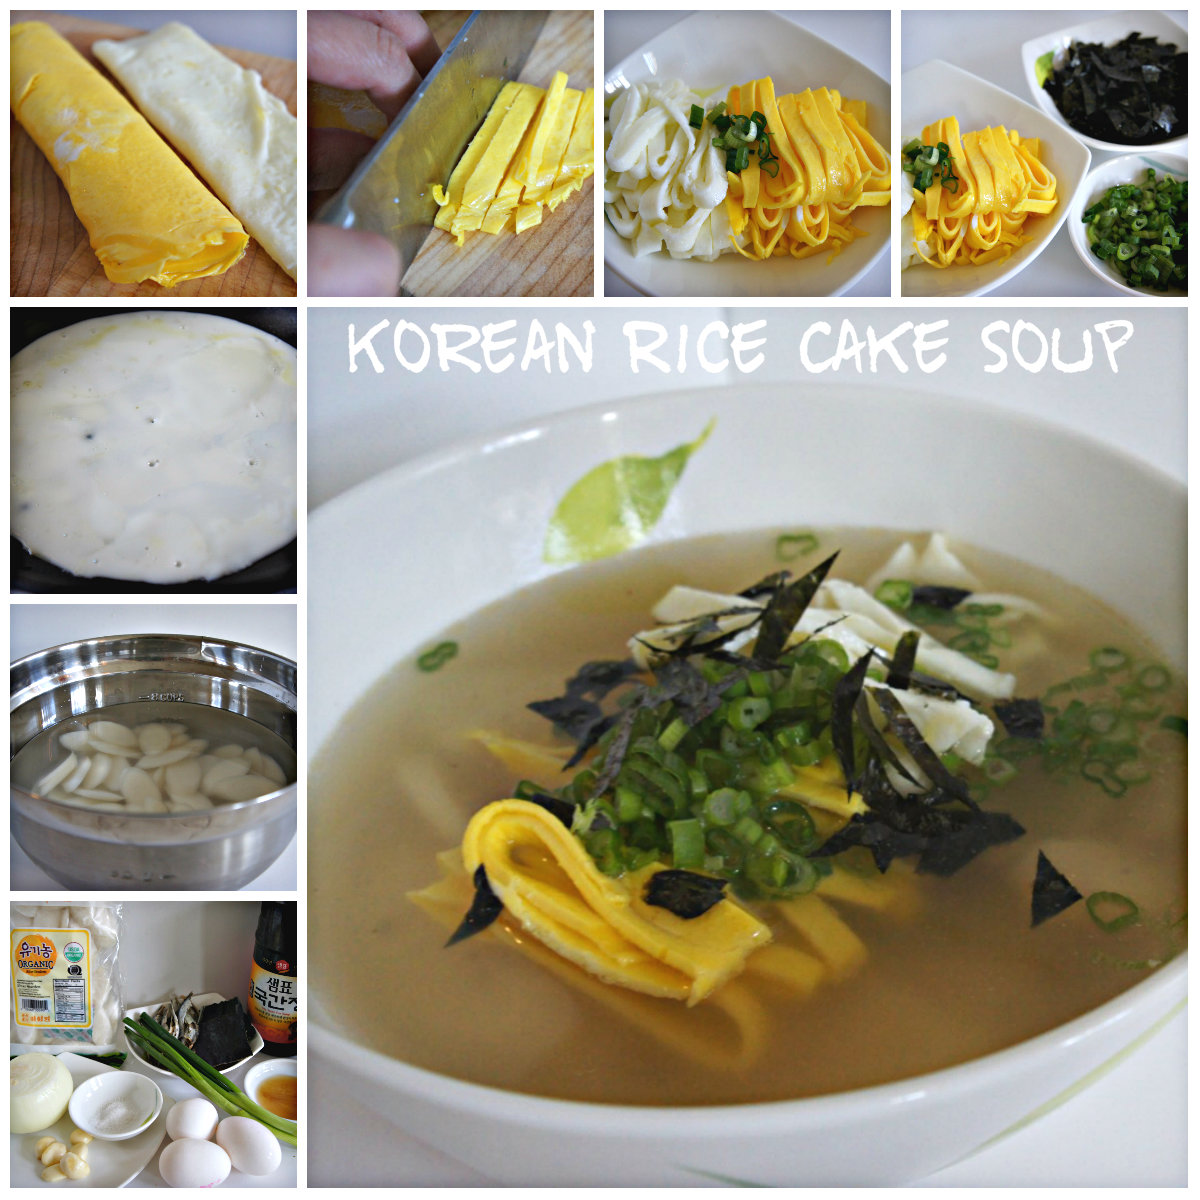 Korean 'Lucky Dduk' Rice Cake Soup